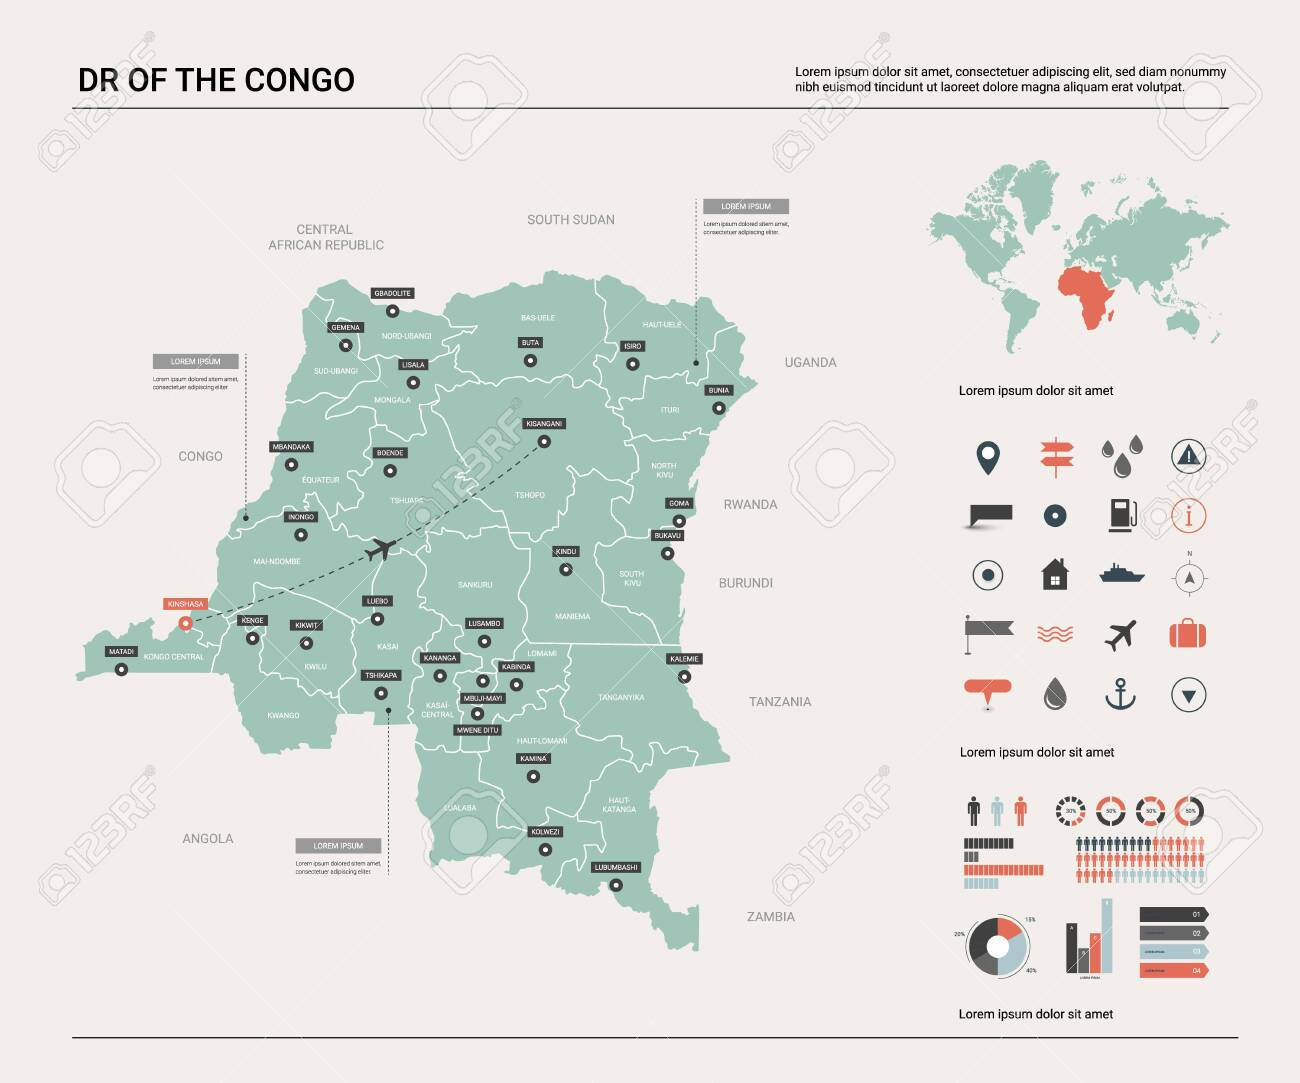 Vector map of DR of the Congo. High detailed country map with.. on manila world map, kampala world map, cairo world map, jeddah world map, phoenix world map, budapest world map, capital city world map, lagos world map, sri lanka world map, jakarta world map, tokyo world map, dili world map, karachi world map, amsterdam world map, palikir world map, islamabad world map, prague world map, damascus world map, cayenne world map, phnom phen world map,